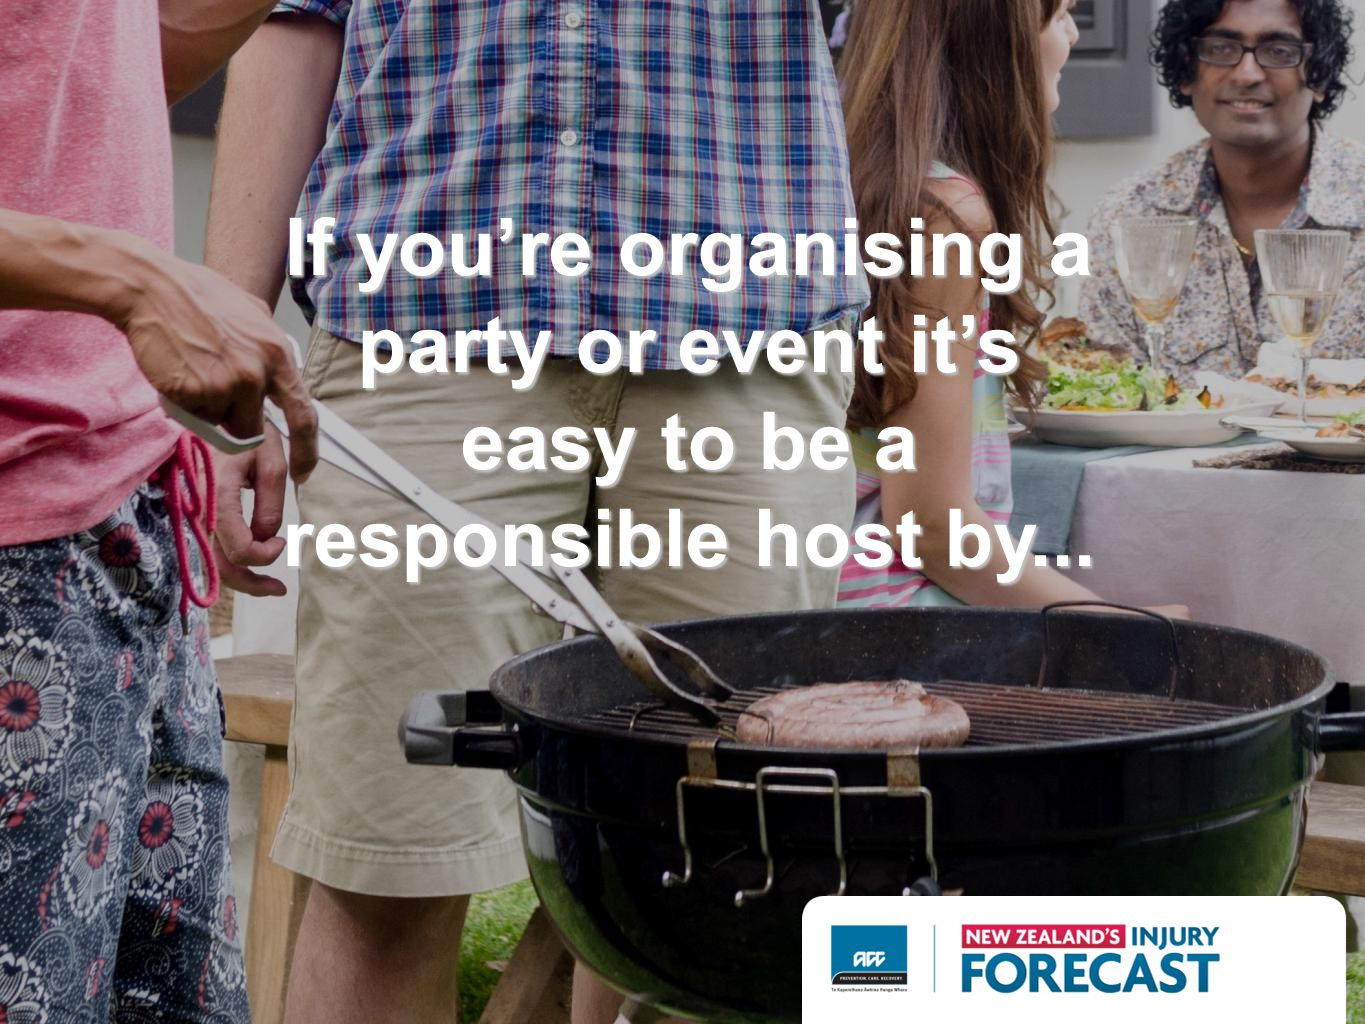 If youre organising a party or event its easy to be a responsible host by...